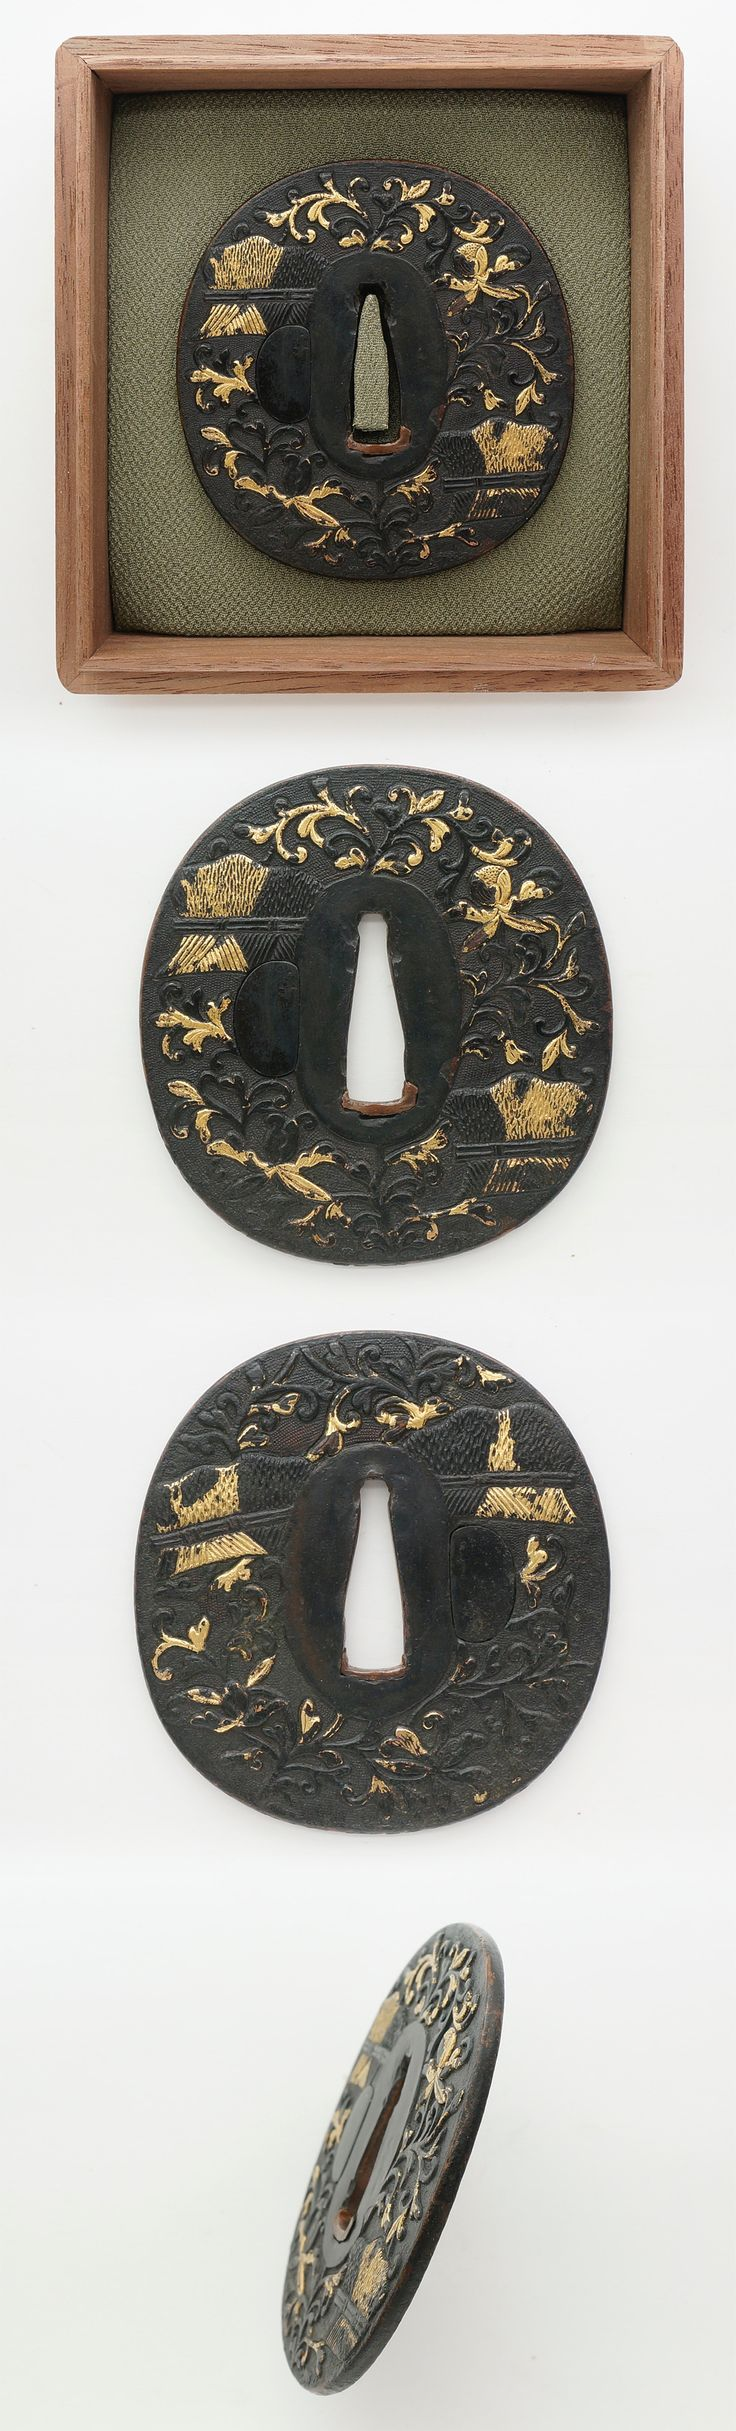 Azuchi momoyama period special feature brushwood fence design carved on yamagane nanakoji plate and inlaid